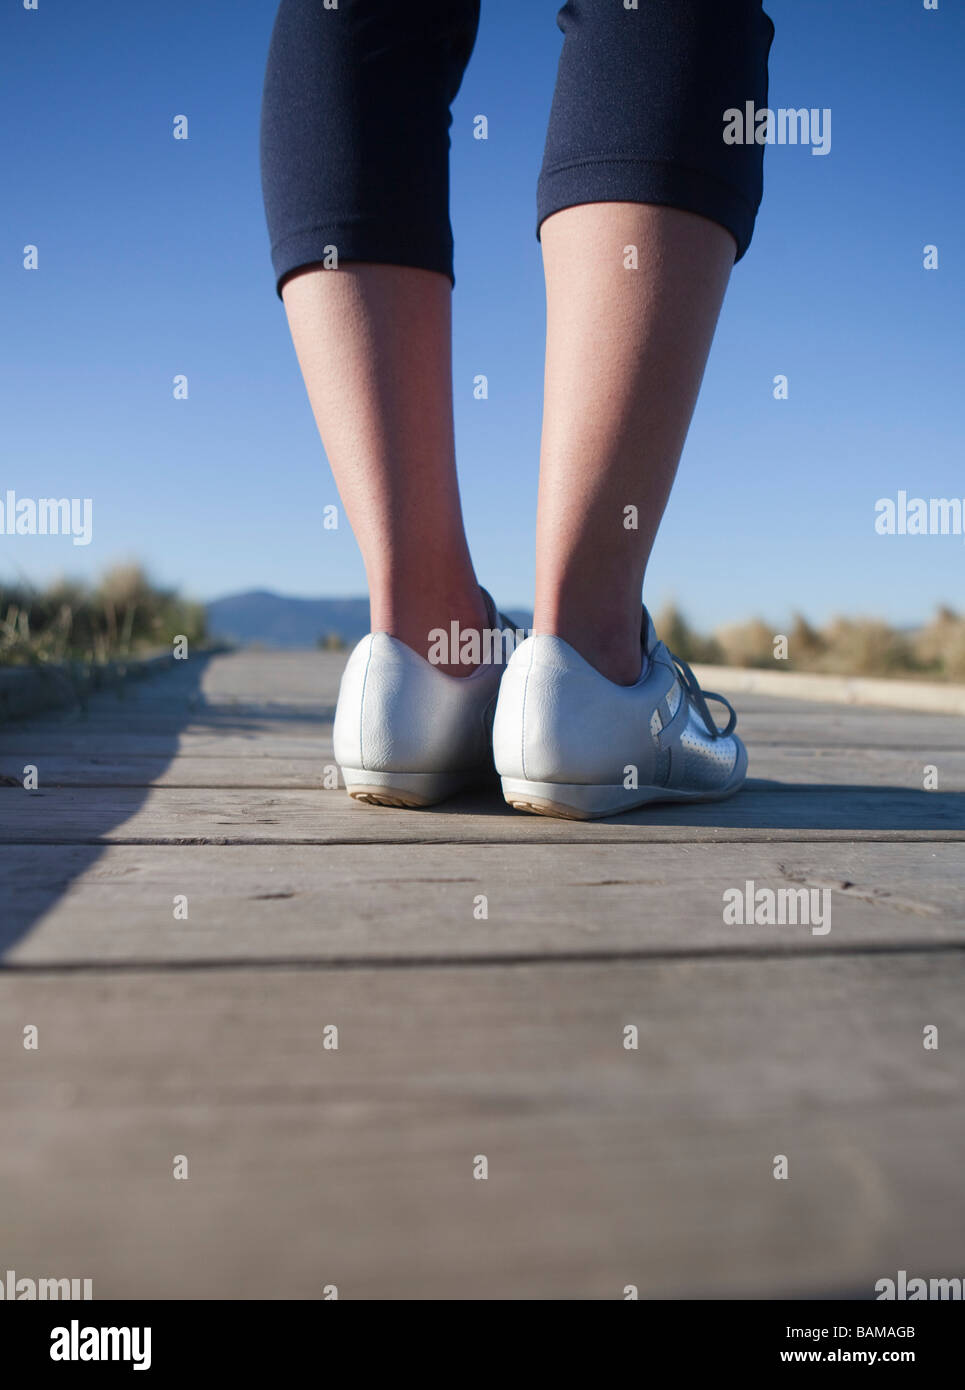 Feet on the ground - Stock Image